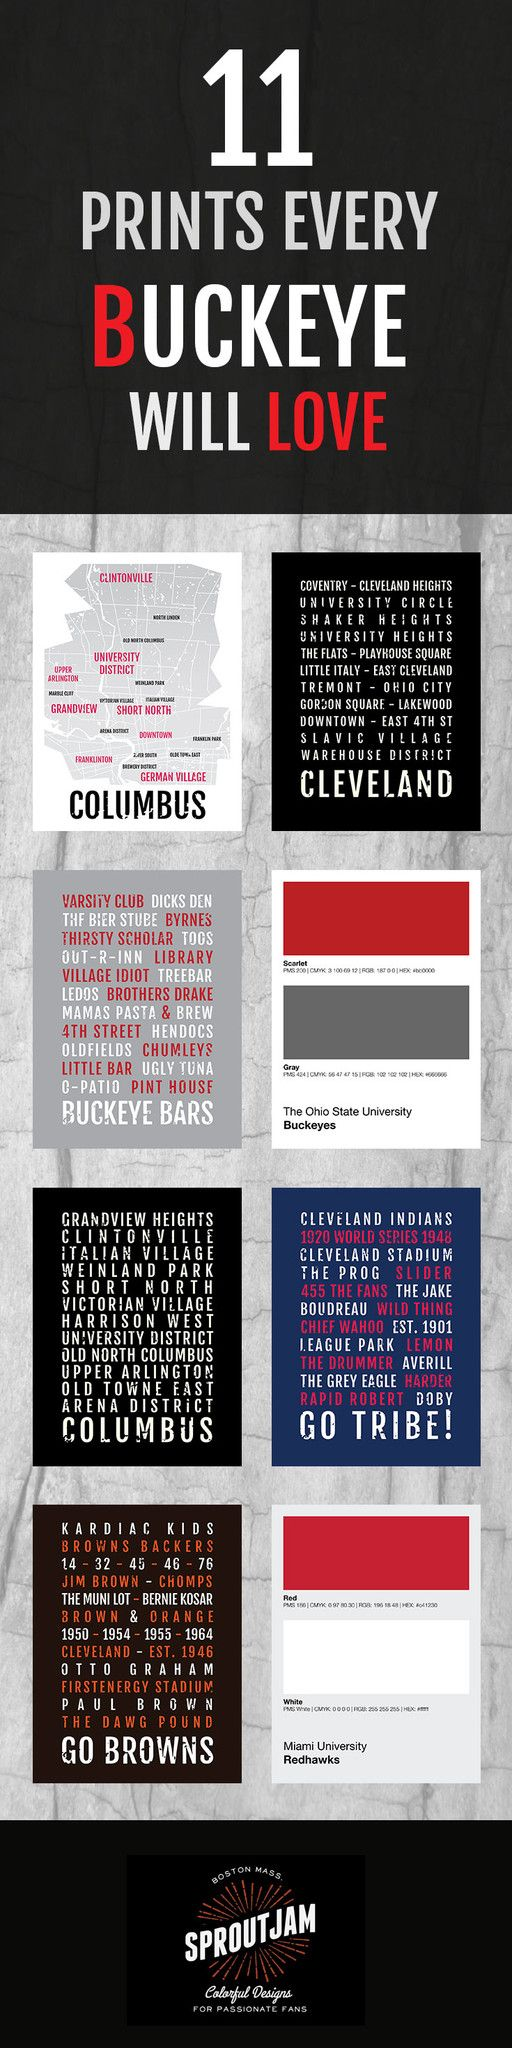 11 Prints Every Buckeye Will Love - Pin for Later! - Perfect Christmas Gift for Ohio State Fans - Posters and Wall Art from Sproutjam.com - Cleveland Indians, Browns, Columbus, Ohio State, Miami University, Kent State, OSU